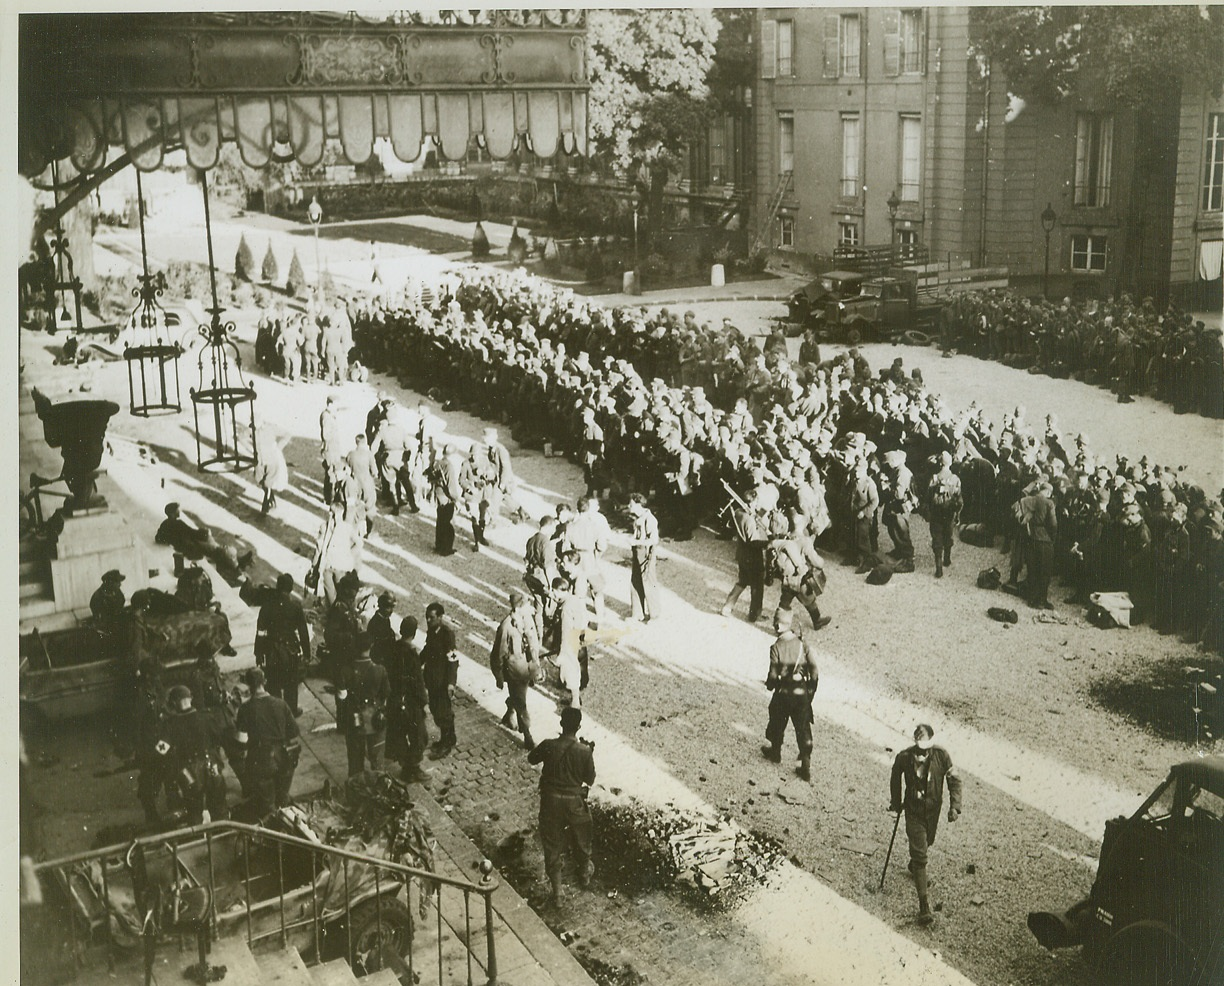 France Regains Its Chamber of Deputies, 8/30/1944. France—Some of the 400 Germans who barricaded themselves in the Chamber of Deputies in Paris and fought off liberating troops are lined up in the courtyard after surrending to French partisan forces.  Credit: ACME;